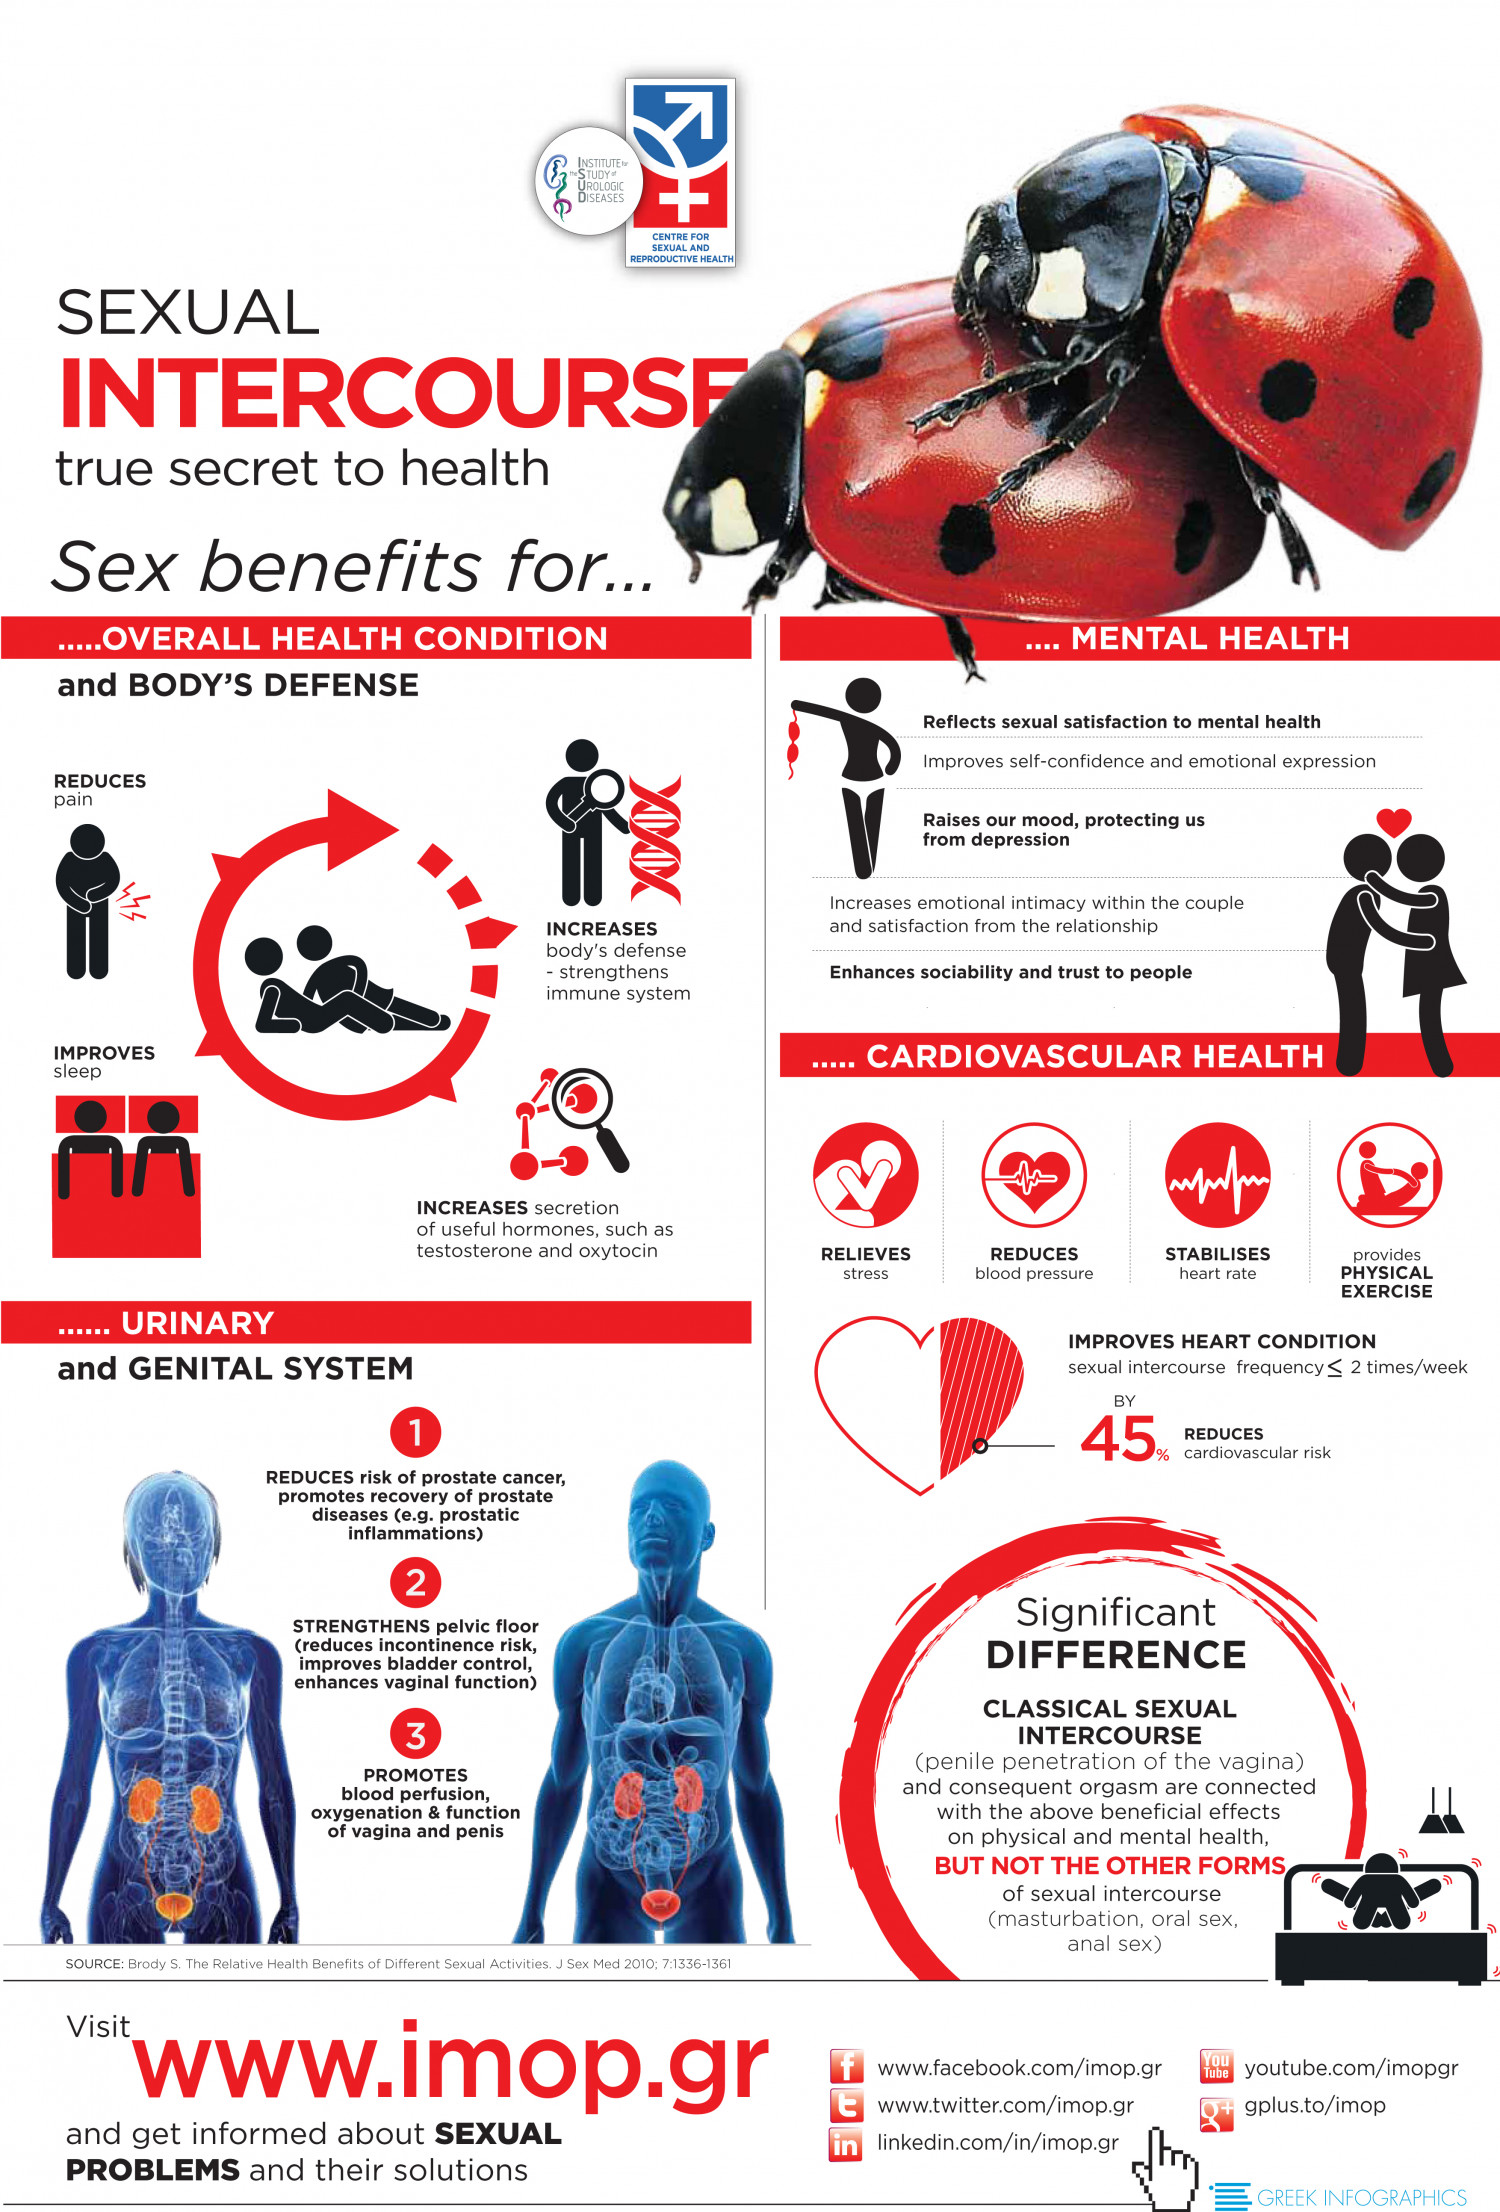 Sexual Intercourse: A True Secret To Health Infographic